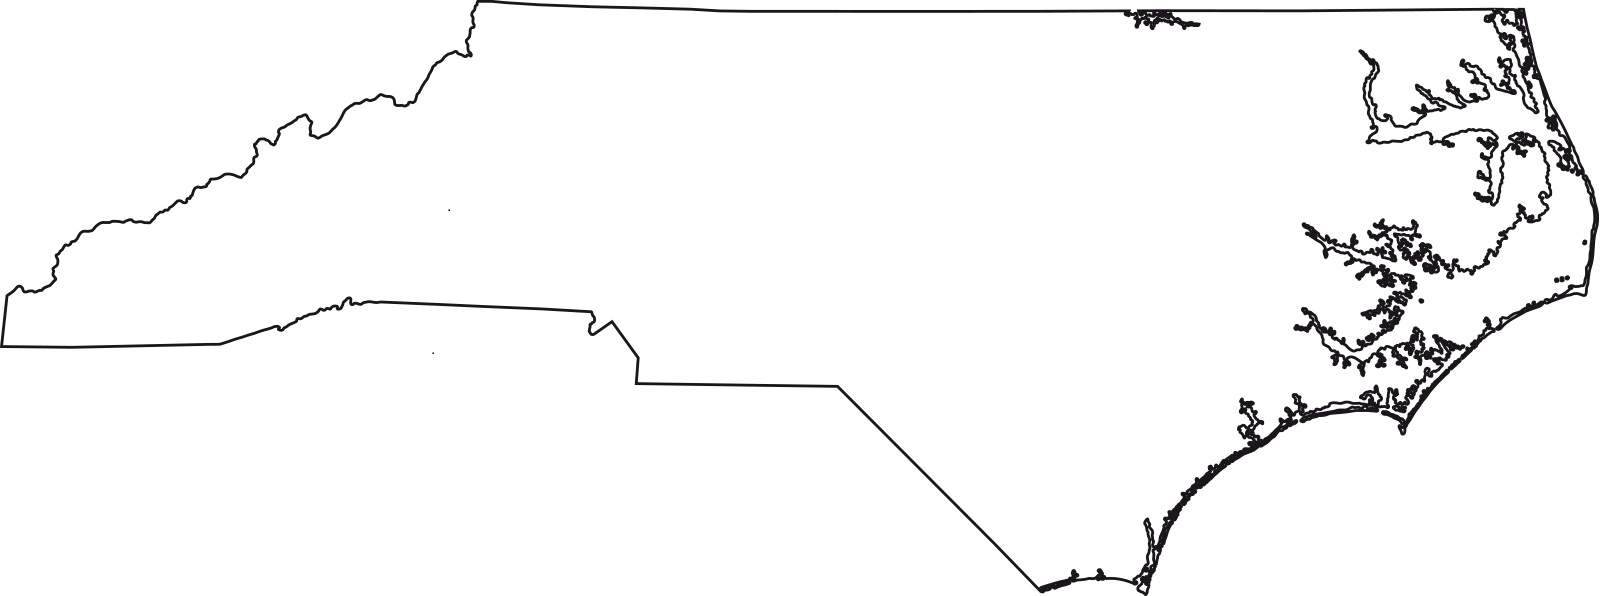 North Carolina Blank Outline Map | Large Printable Standard Map